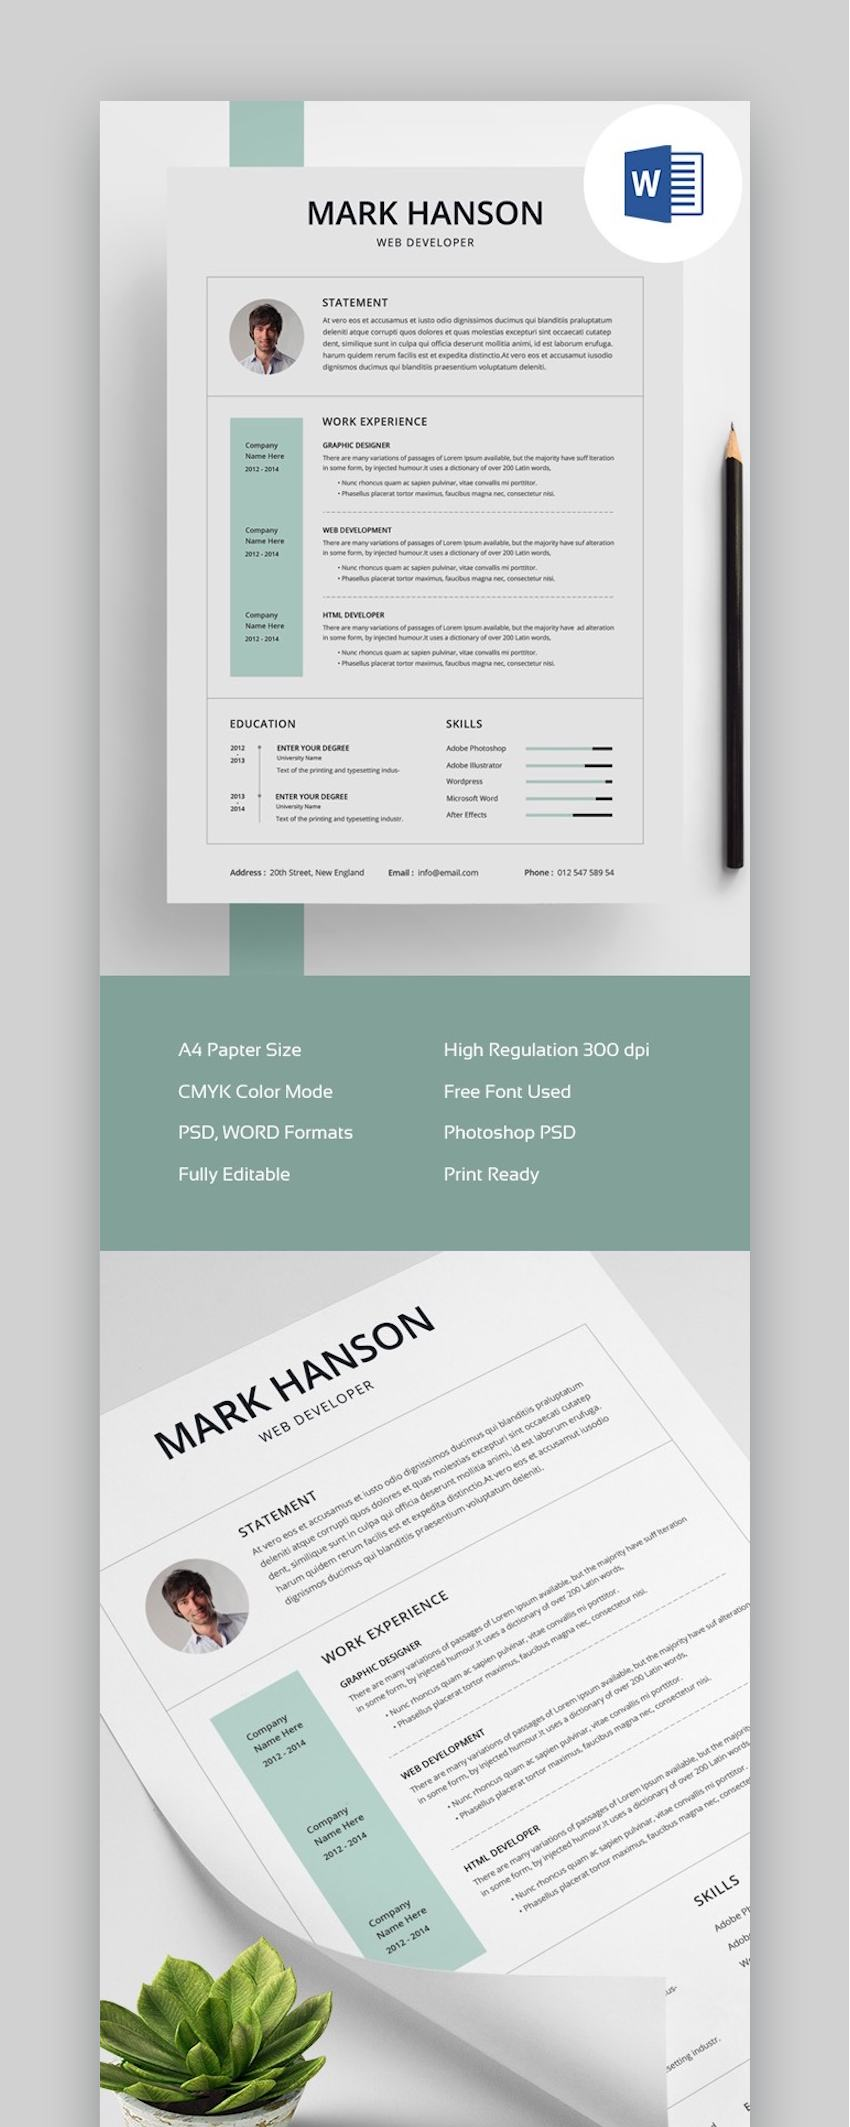 free creative resume templates word downloads for graphic design template env clean final Resume Free Graphic Design Resume Template